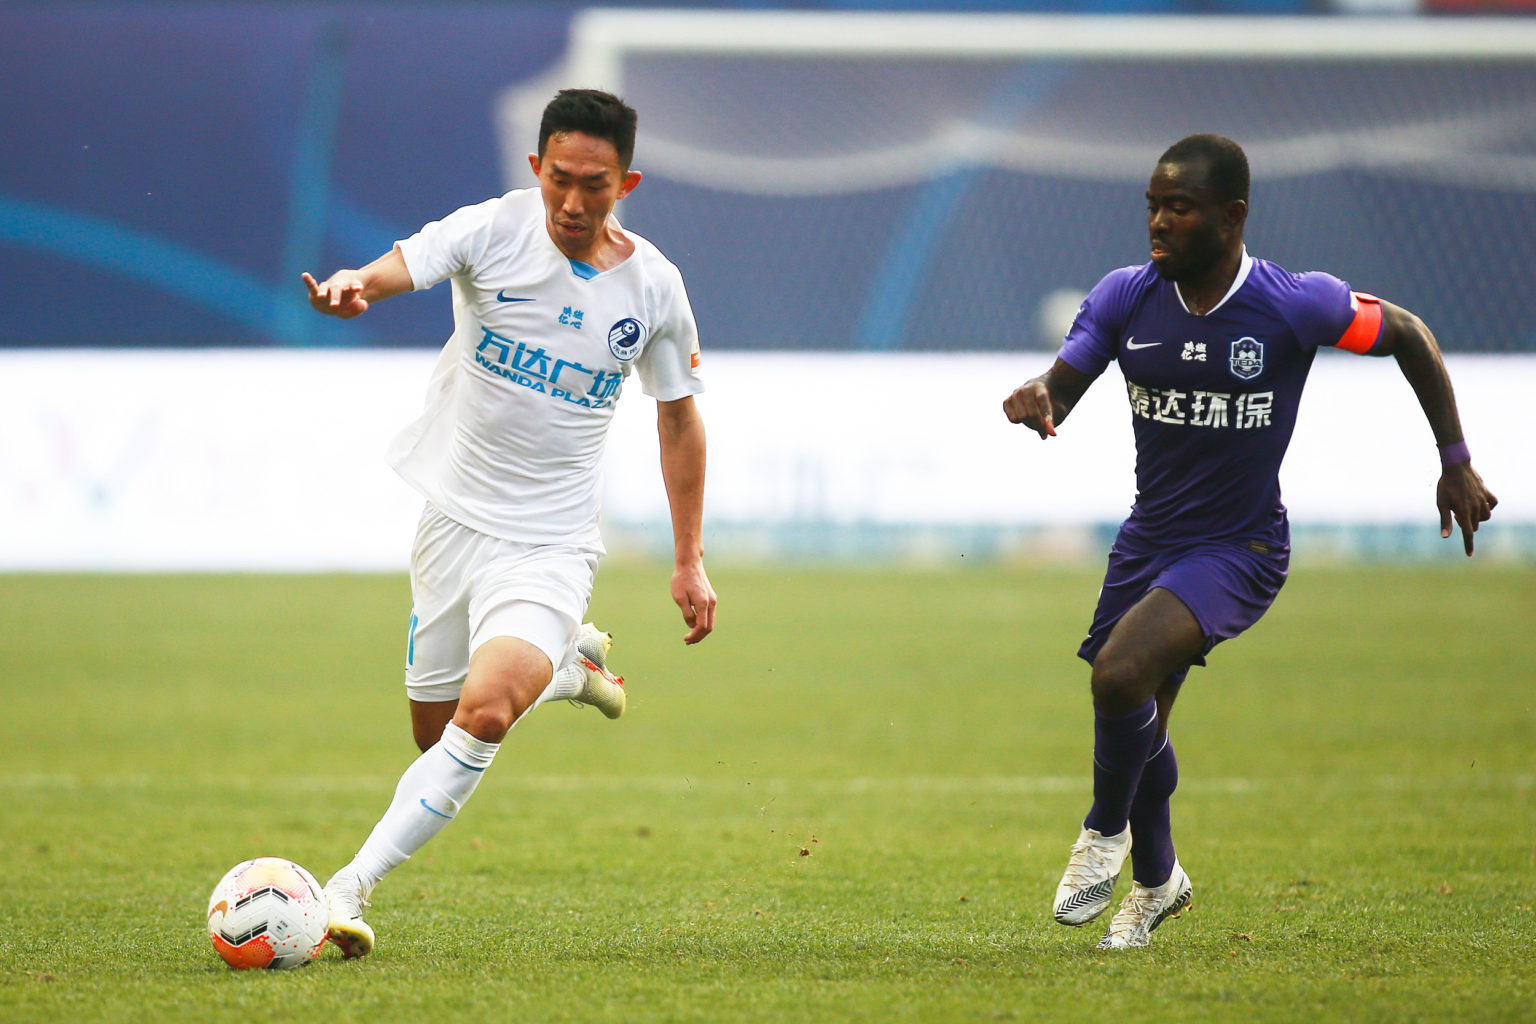 VIDEO: Watch Frank Acheampong's sensational brace that powered Tianjin TEDA to victory against Dalian Pro